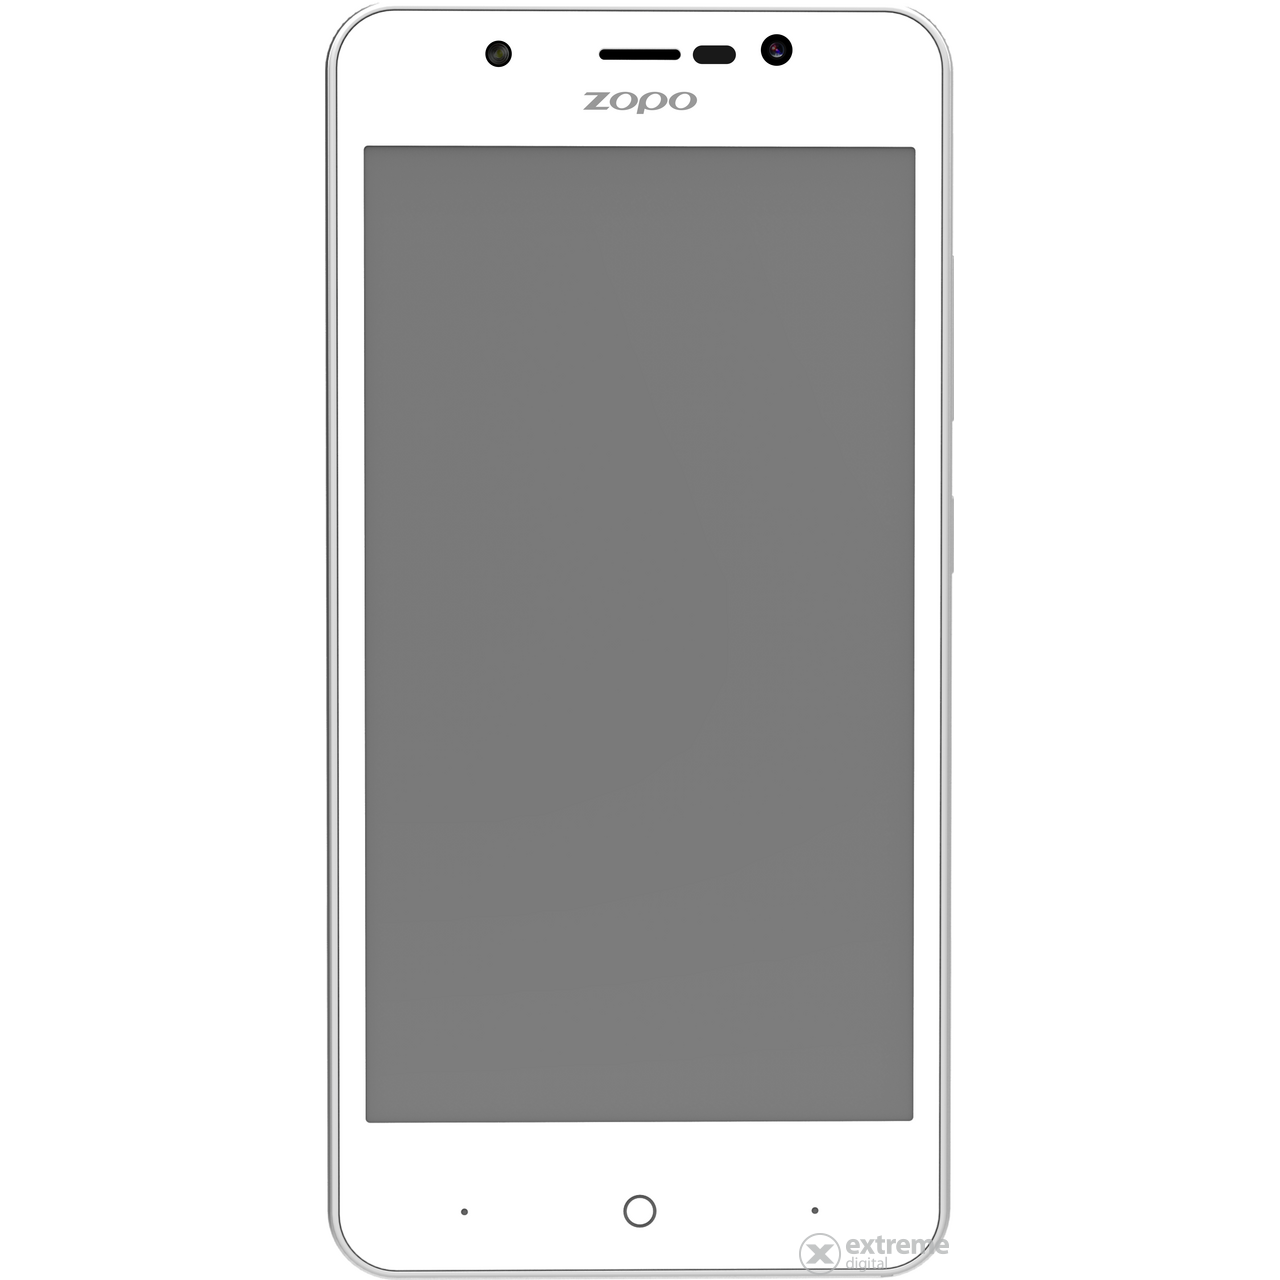 zopo-350-color-e-dual-sim-kartyafuggetlen-okostelefon-white-android_debd8ada.png